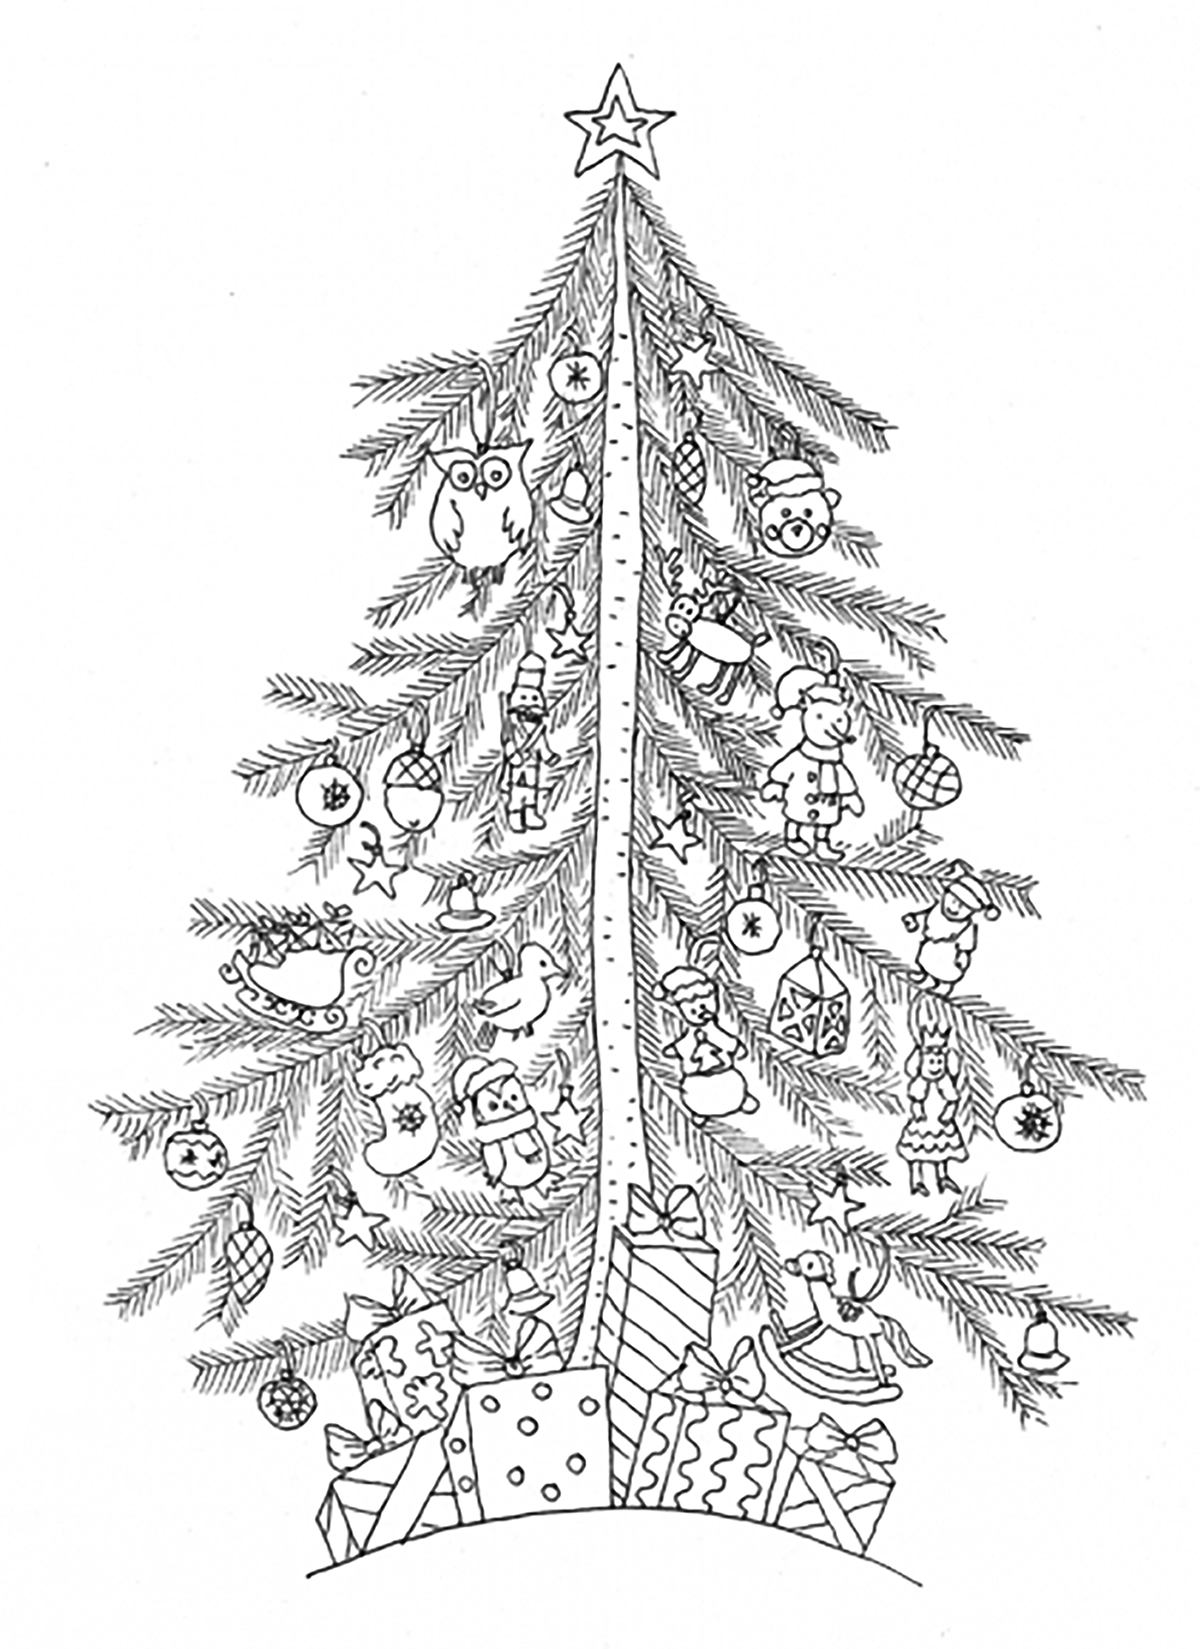 Christmas Tree Coloring Page | Christmas tree coloring page, Tree ... | 1649x1200